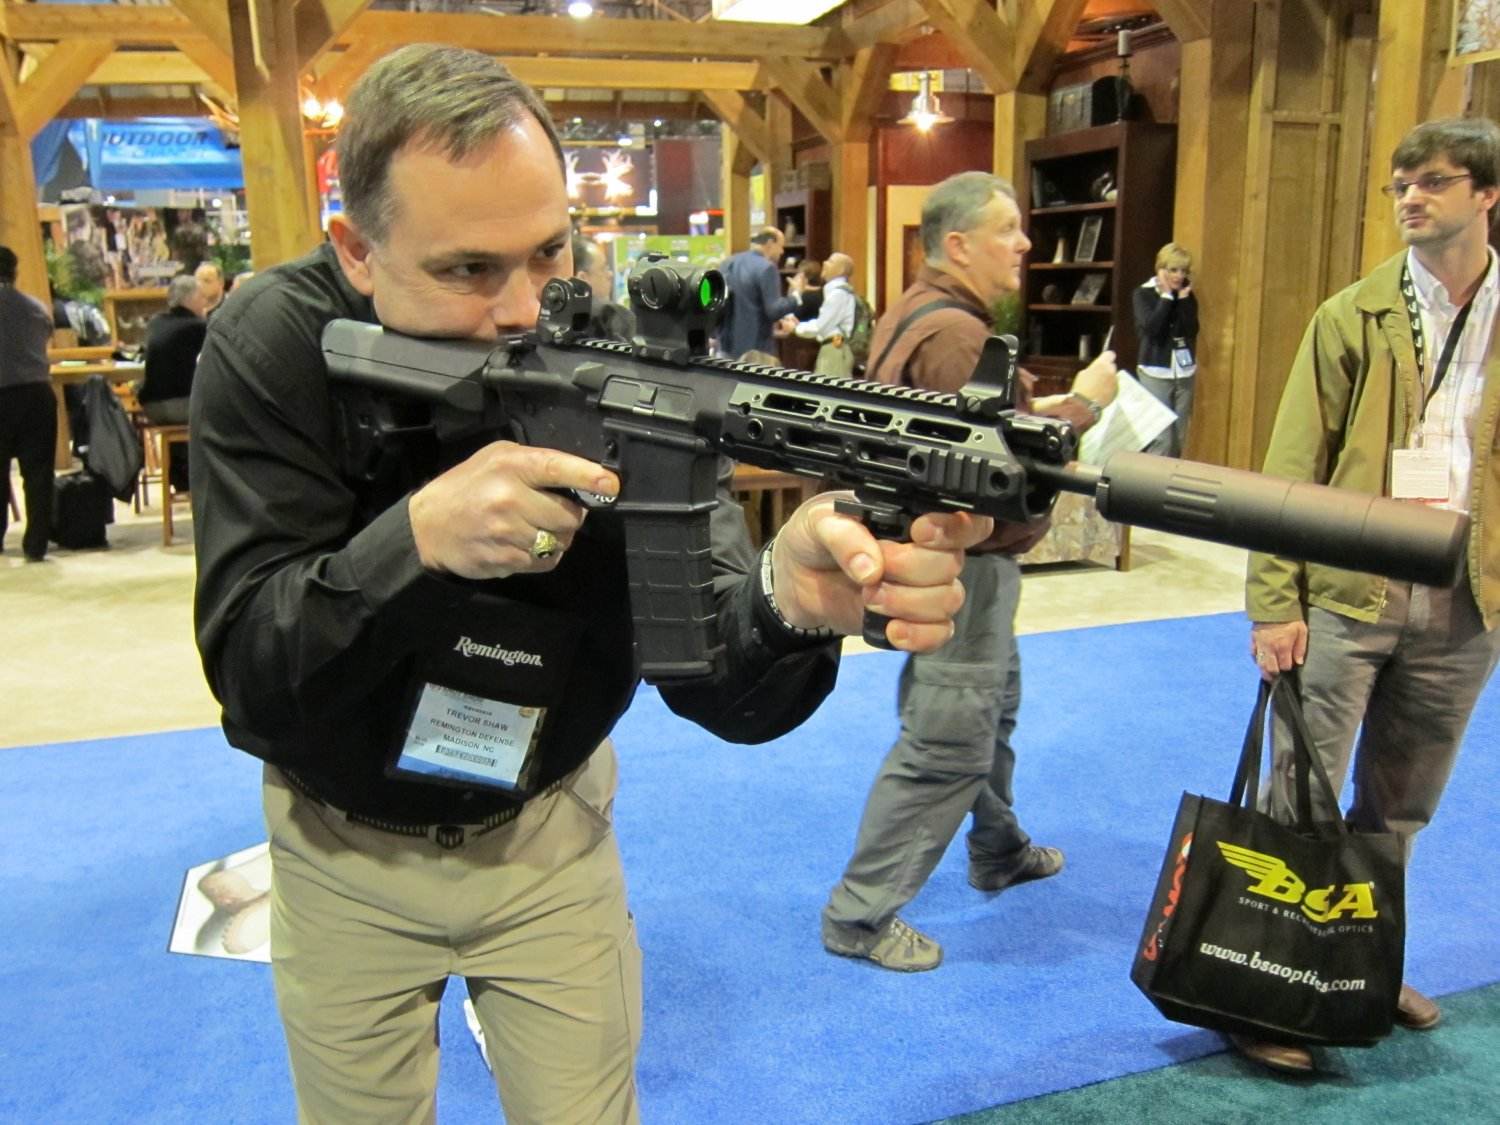 SHOT Show 2010 Remington Military R4 Gas Piston Op Rod AR 5.56mm 1 Remington Military R 4 Gas Piston Carbine (GPC) Tactical AR Carbine with Proprietary Monolithic Rail System (Pics!)